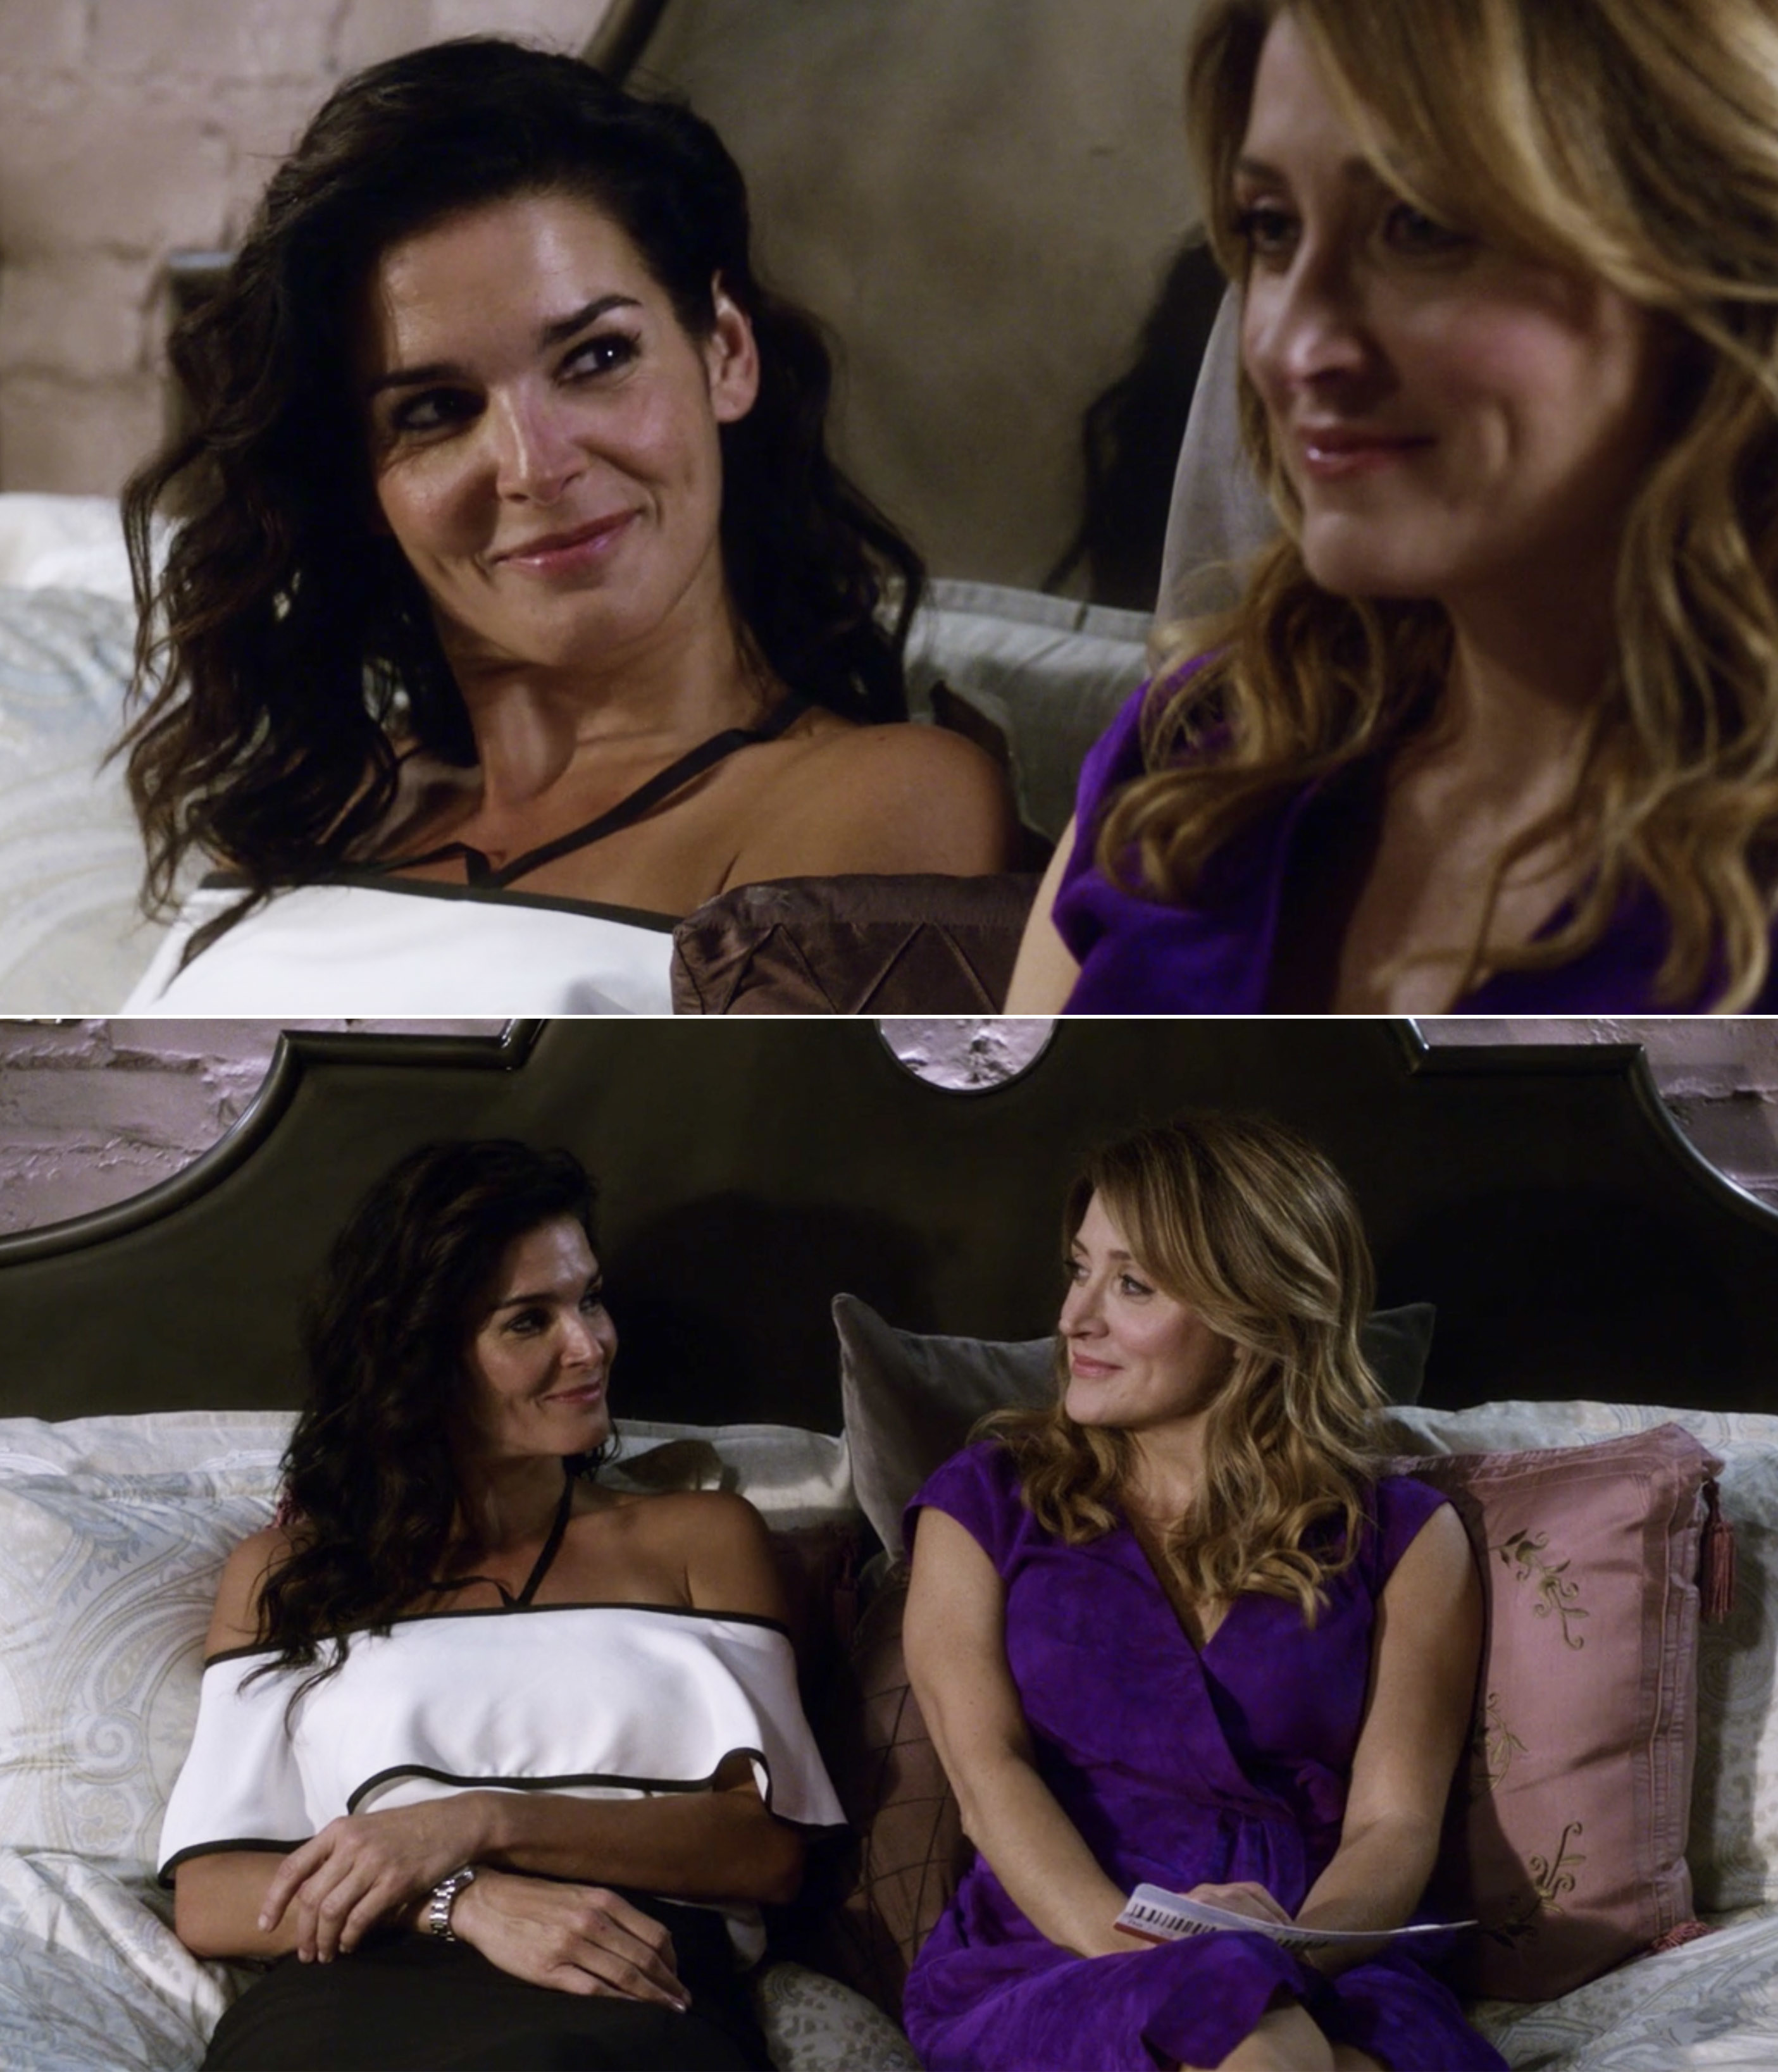 Rizzoli and Isles looking at each other while sitting on a bed next to each other